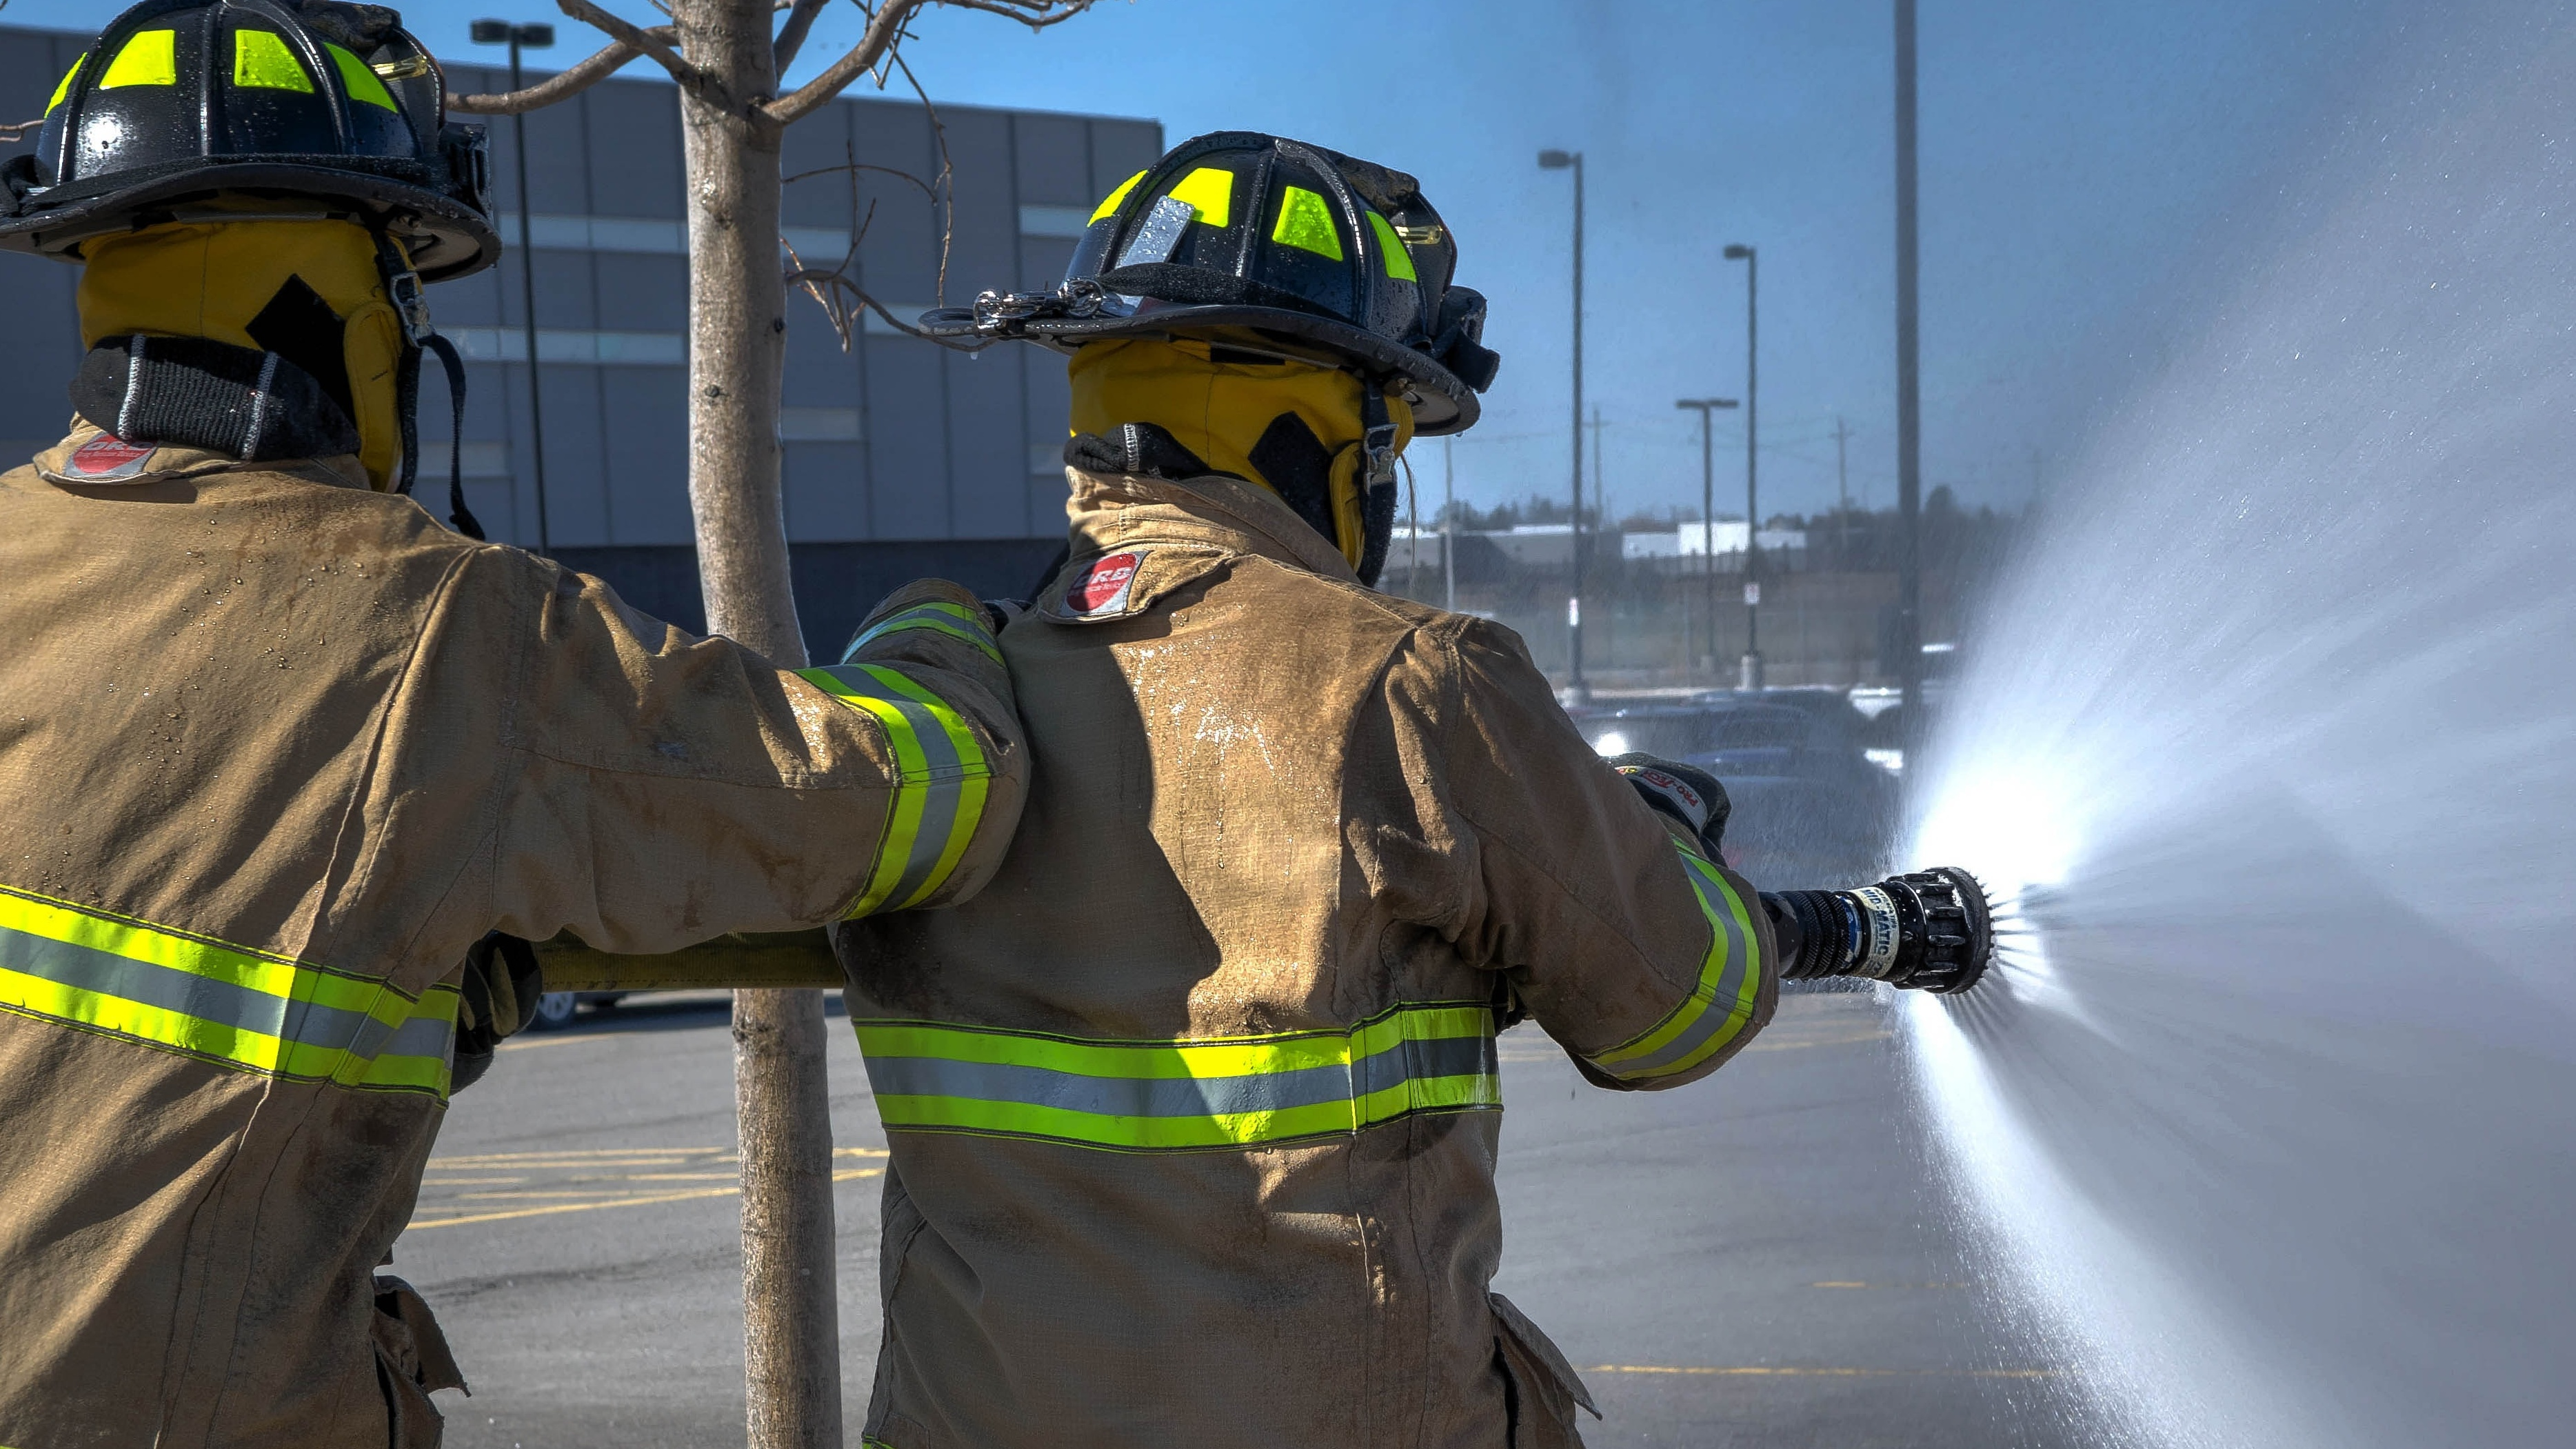 Are You Stuck Fighting Fires?